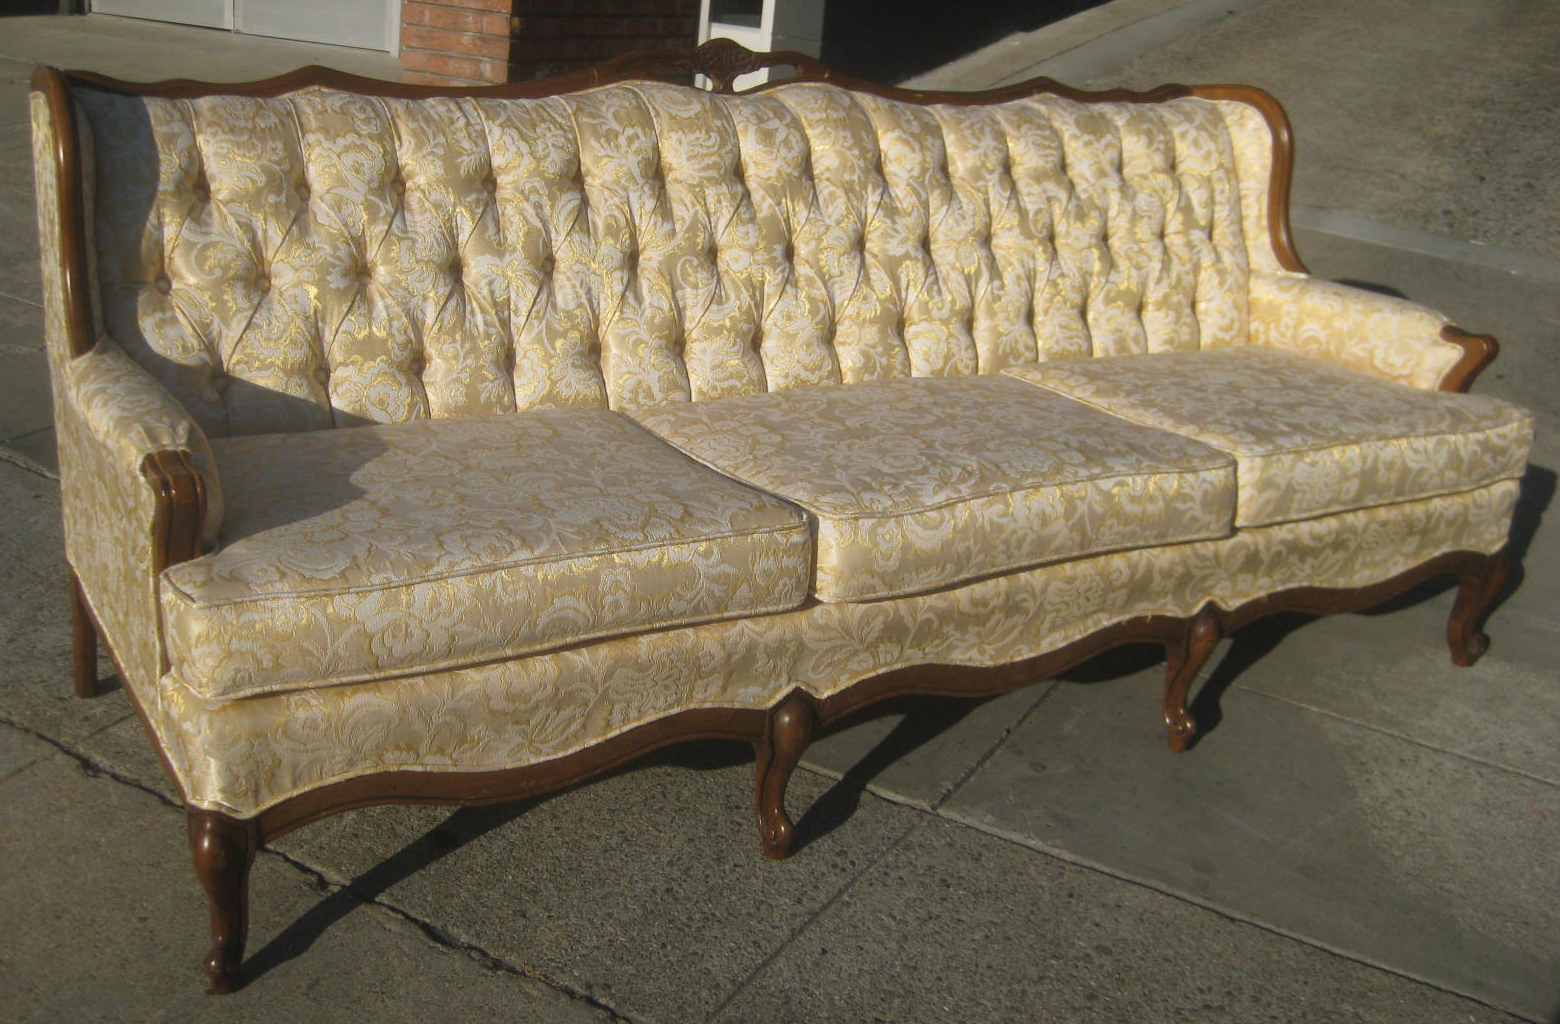 couch sofa zinc dfs french seater tealandbluecombination ireland